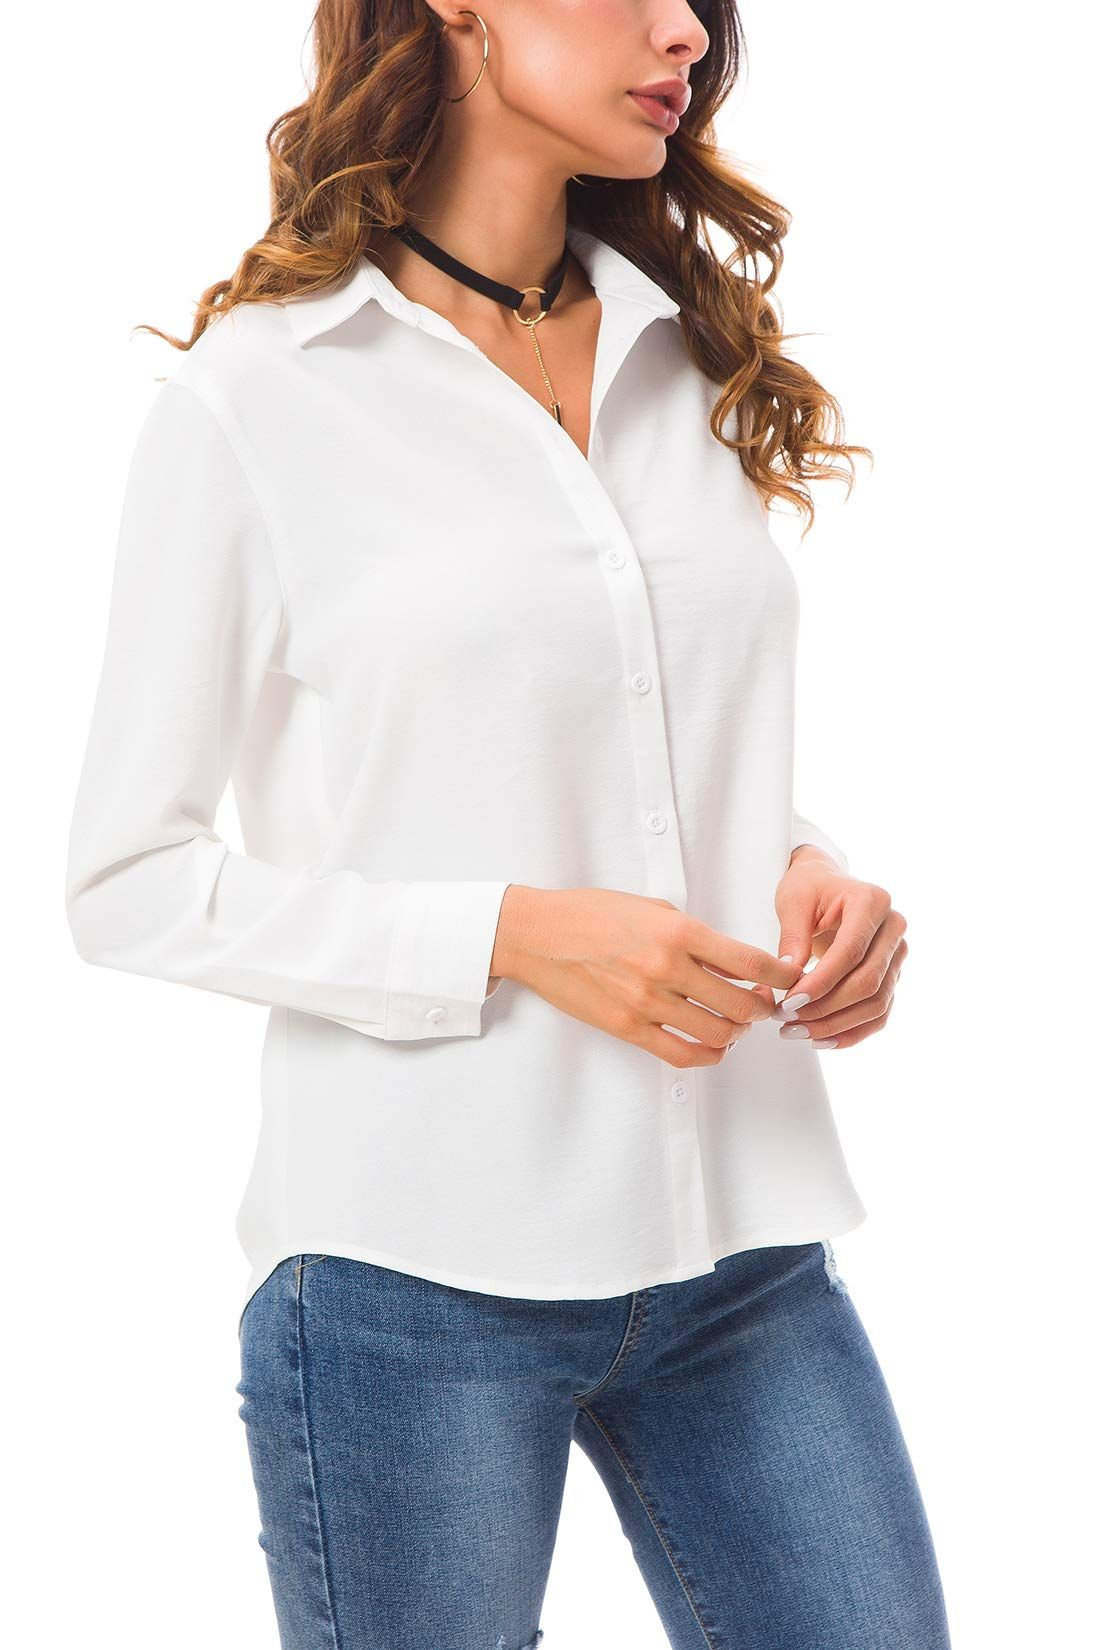 a64d48de0 CantonWalker Womens Long Sleeve Shirt Loose Casual Button Professional  White Shirt 5005 S White ** See this great product. (This is an affiliate  link) # ...